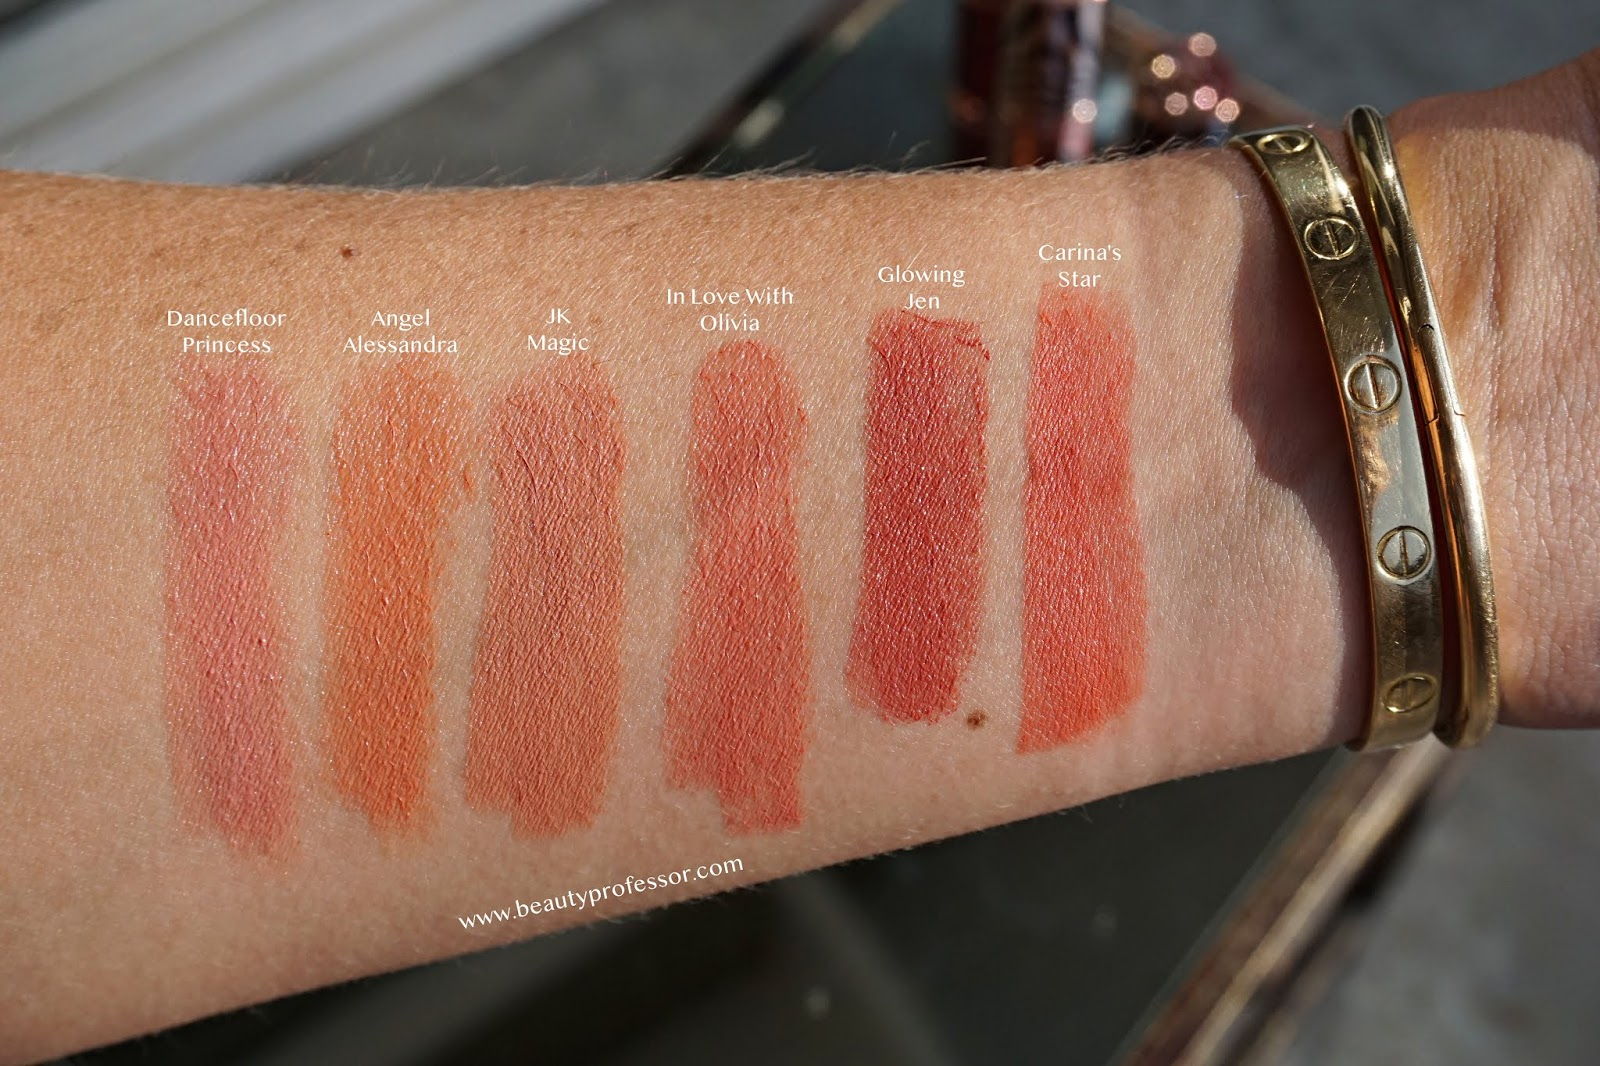 Charlotte tilbury hot lips 2 swatches